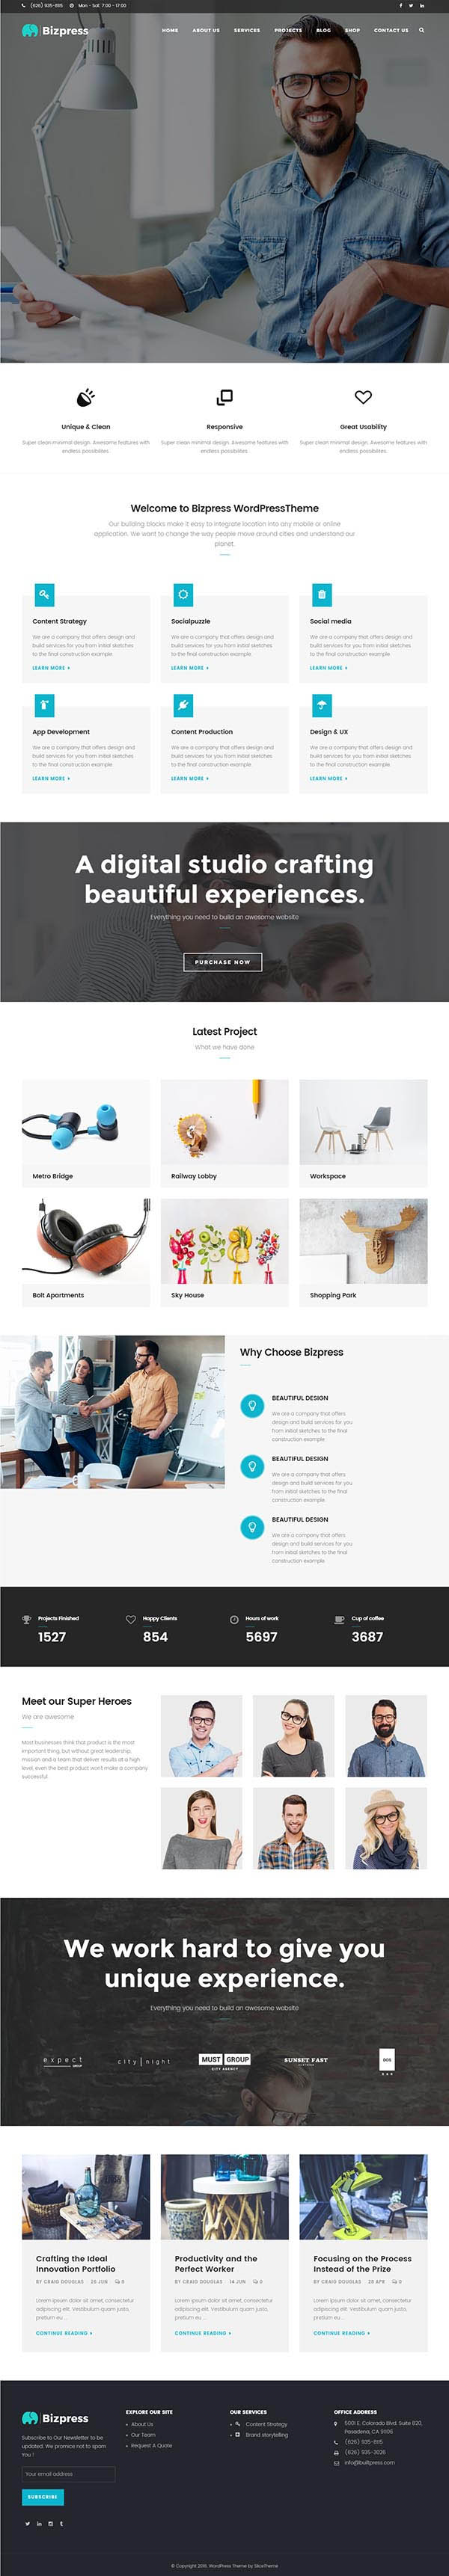 BizPress : Business & Corporate WordPress Theme